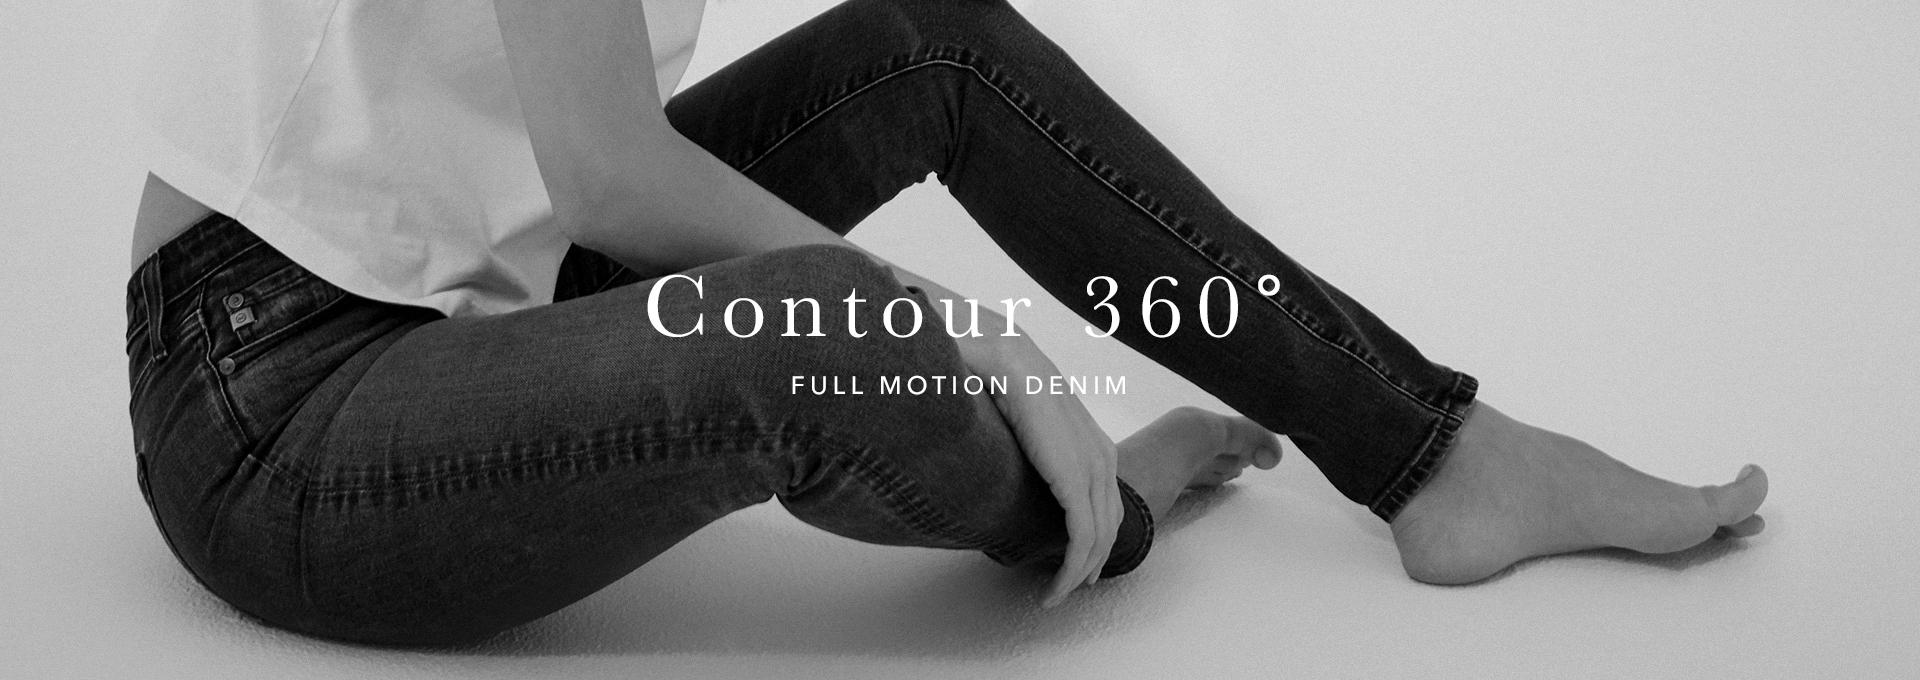 Shop Women's Contour 360 Denim